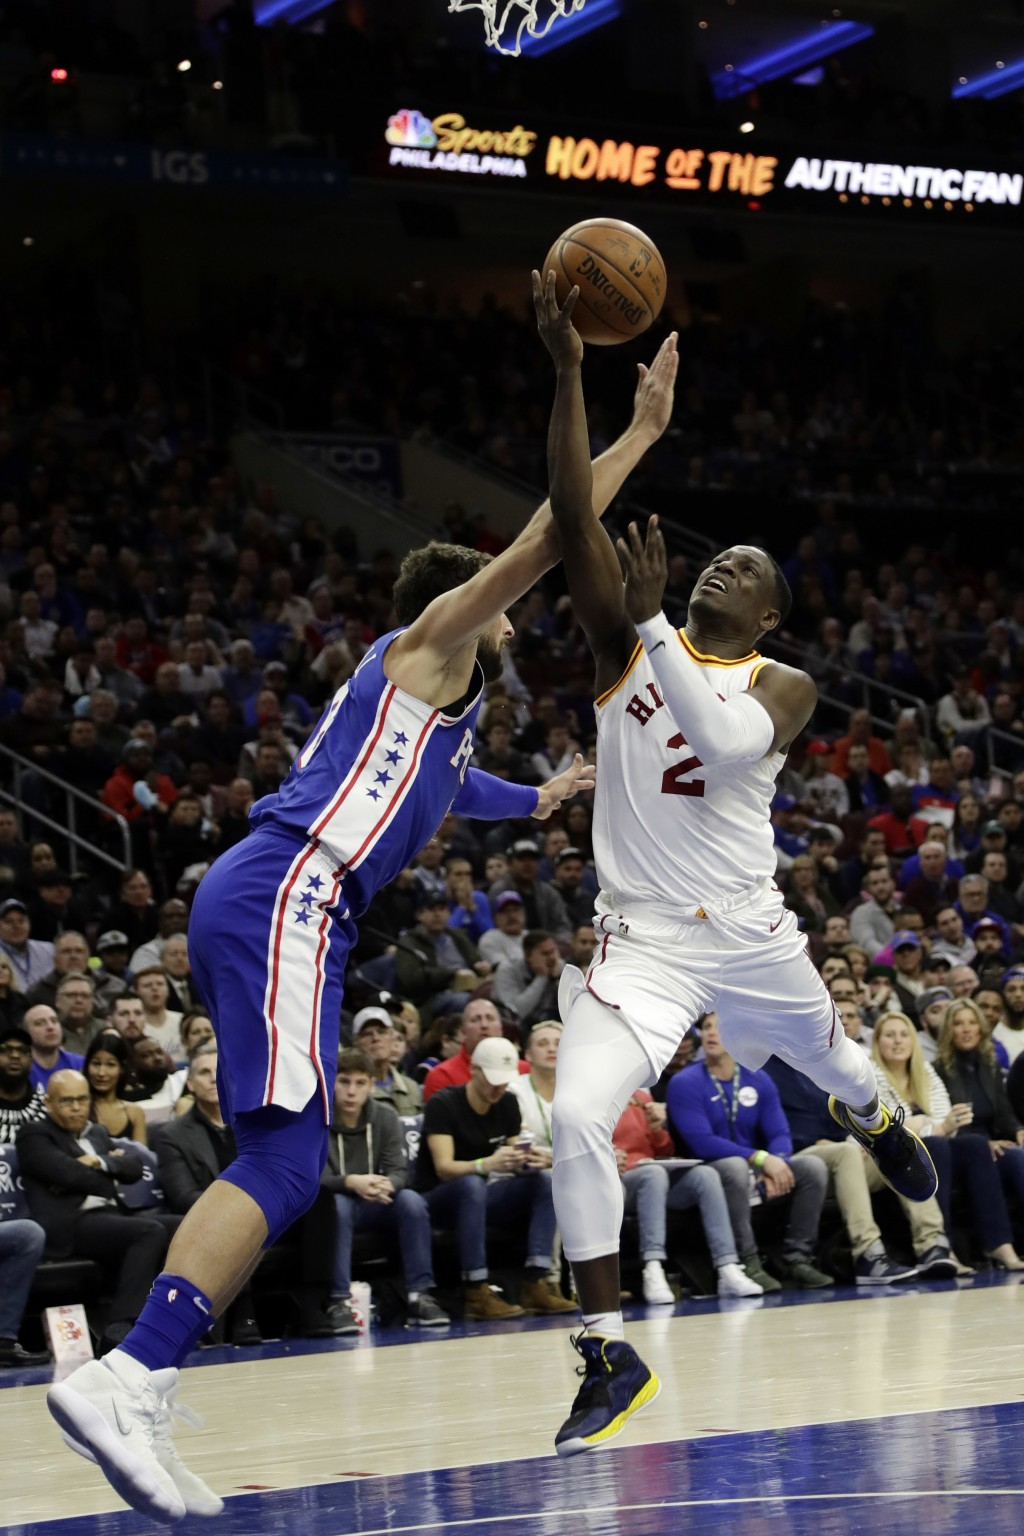 Indiana Pacers' Darren Collison, right, goes up for a shot against Philadelphia 76ers' Marco Belinelli during the first half of an NBA basketball game